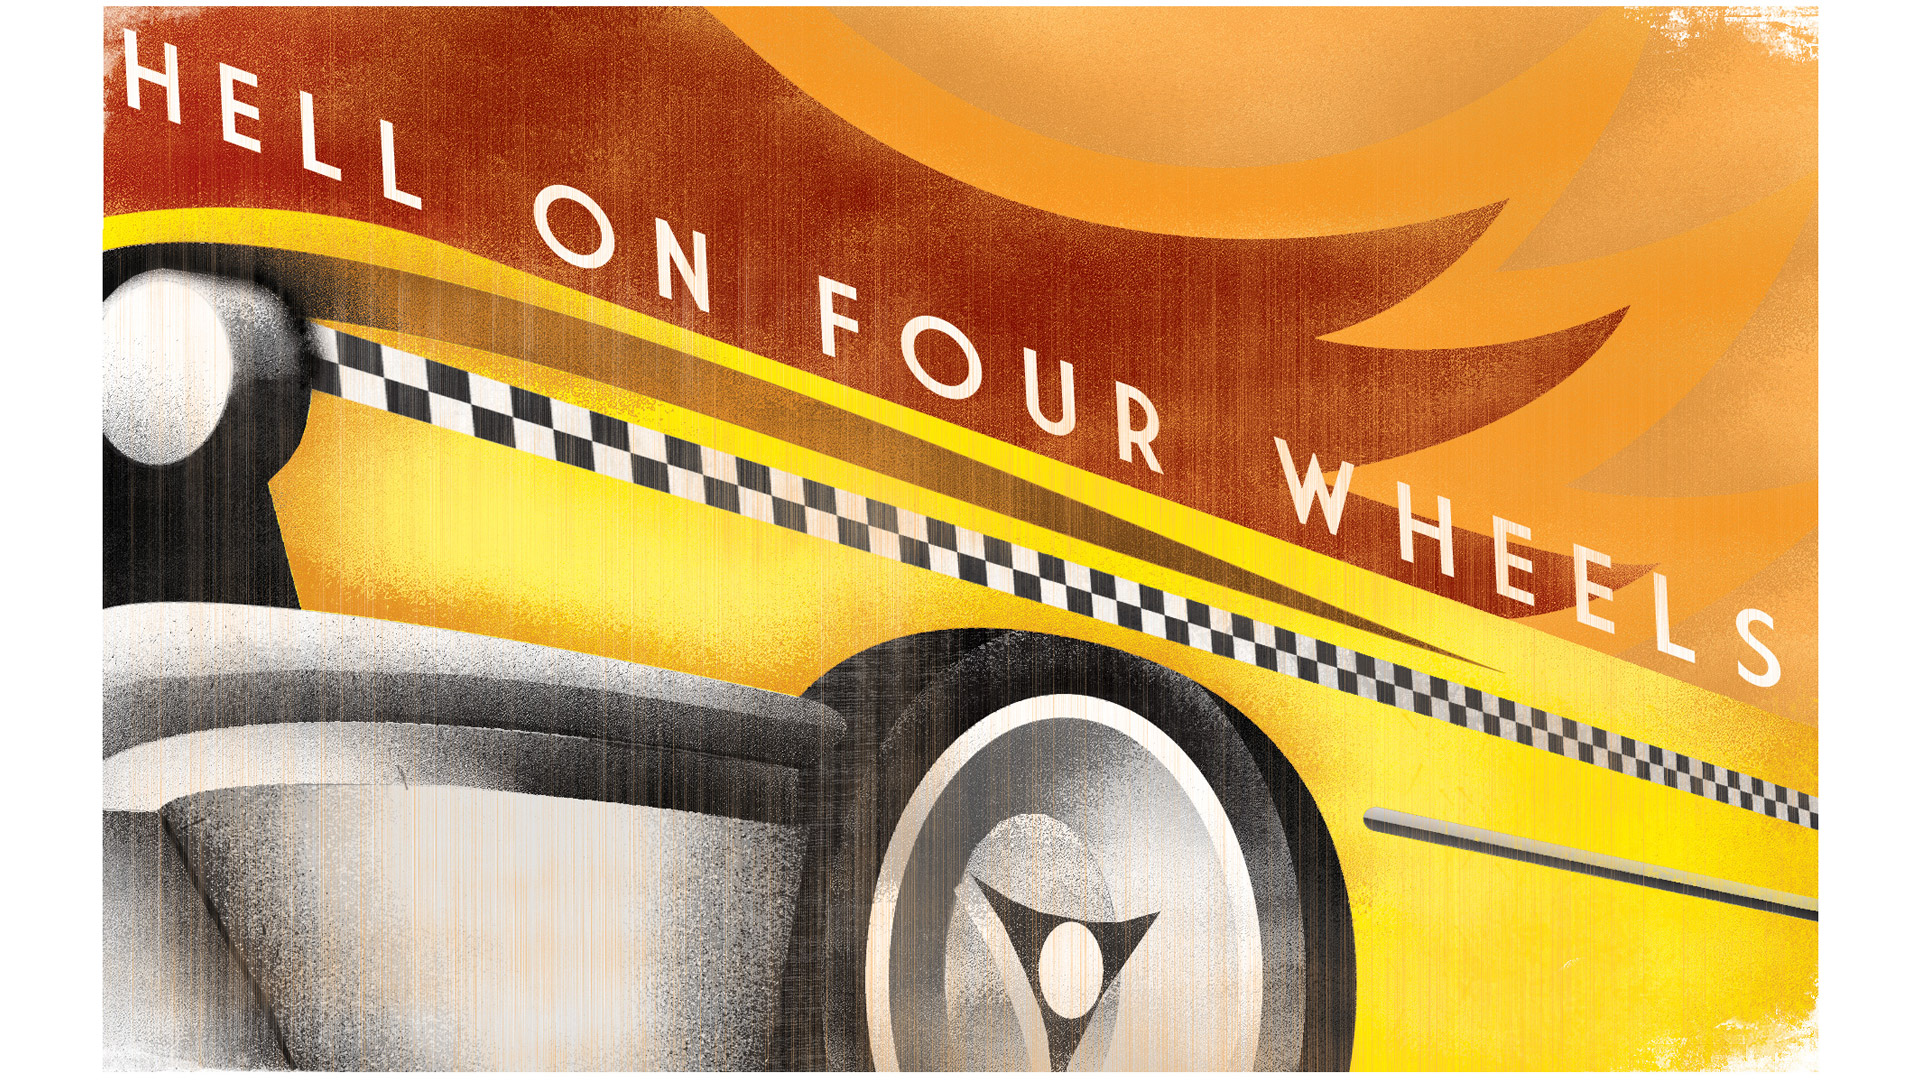 Crazy Taxi Wallpaper in 1920x1080